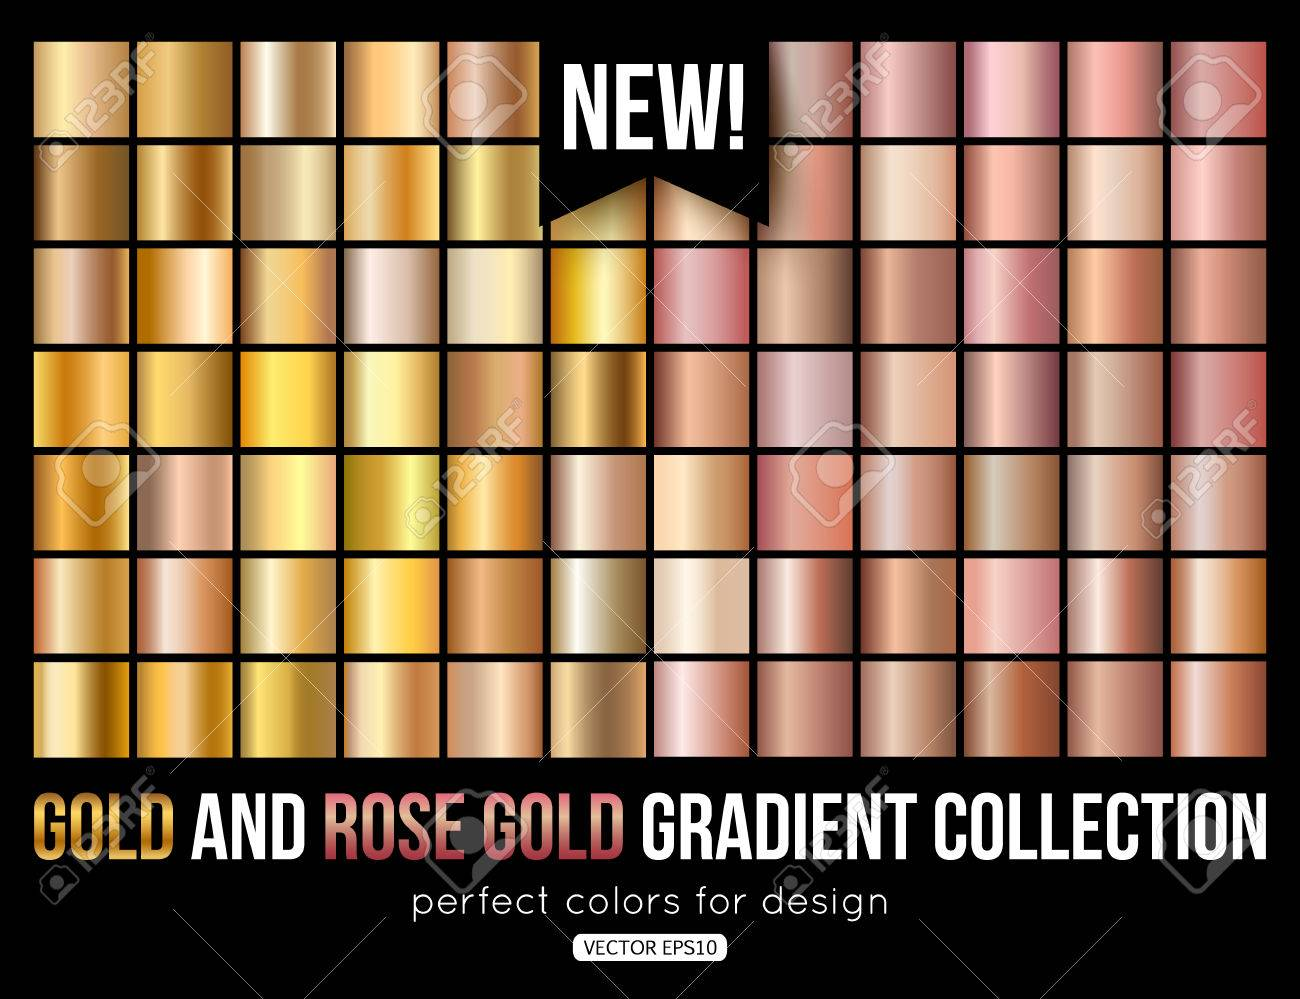 Rose gold gradient collection. Trend colors. Vector metal texture. - 72523117